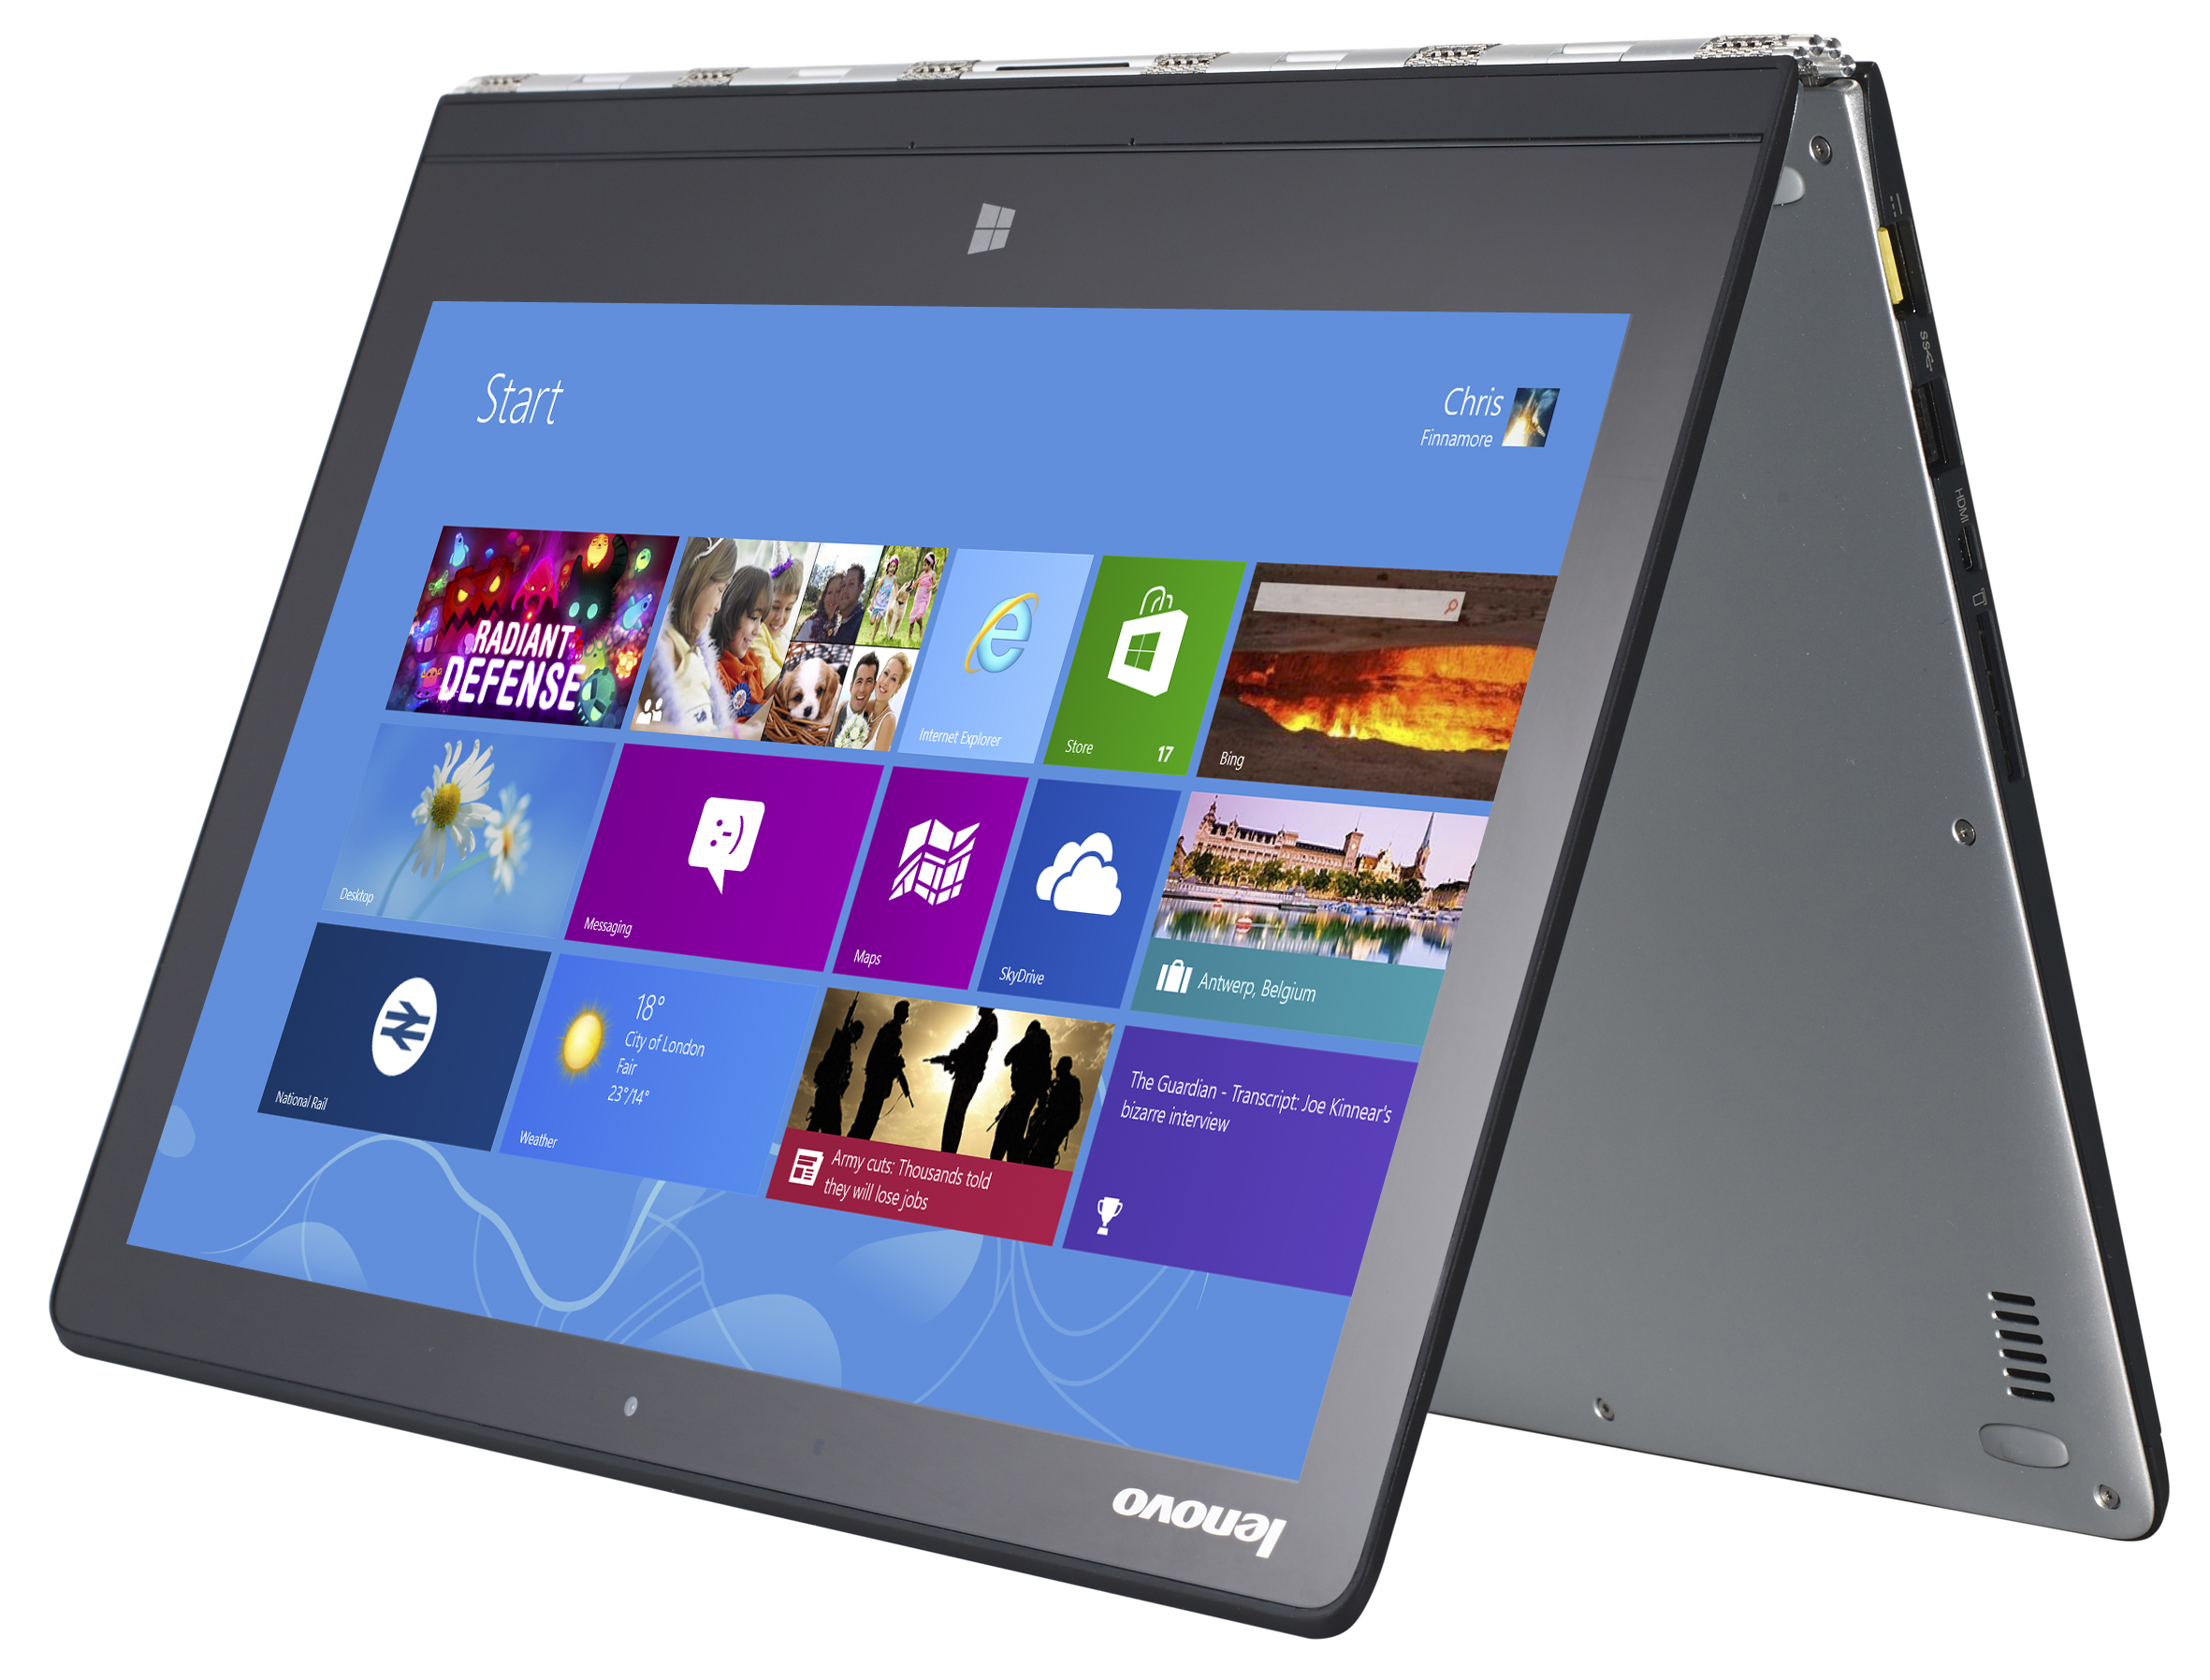 Lenovo Yoga 3 Pro - The Best Hybrid Laptop